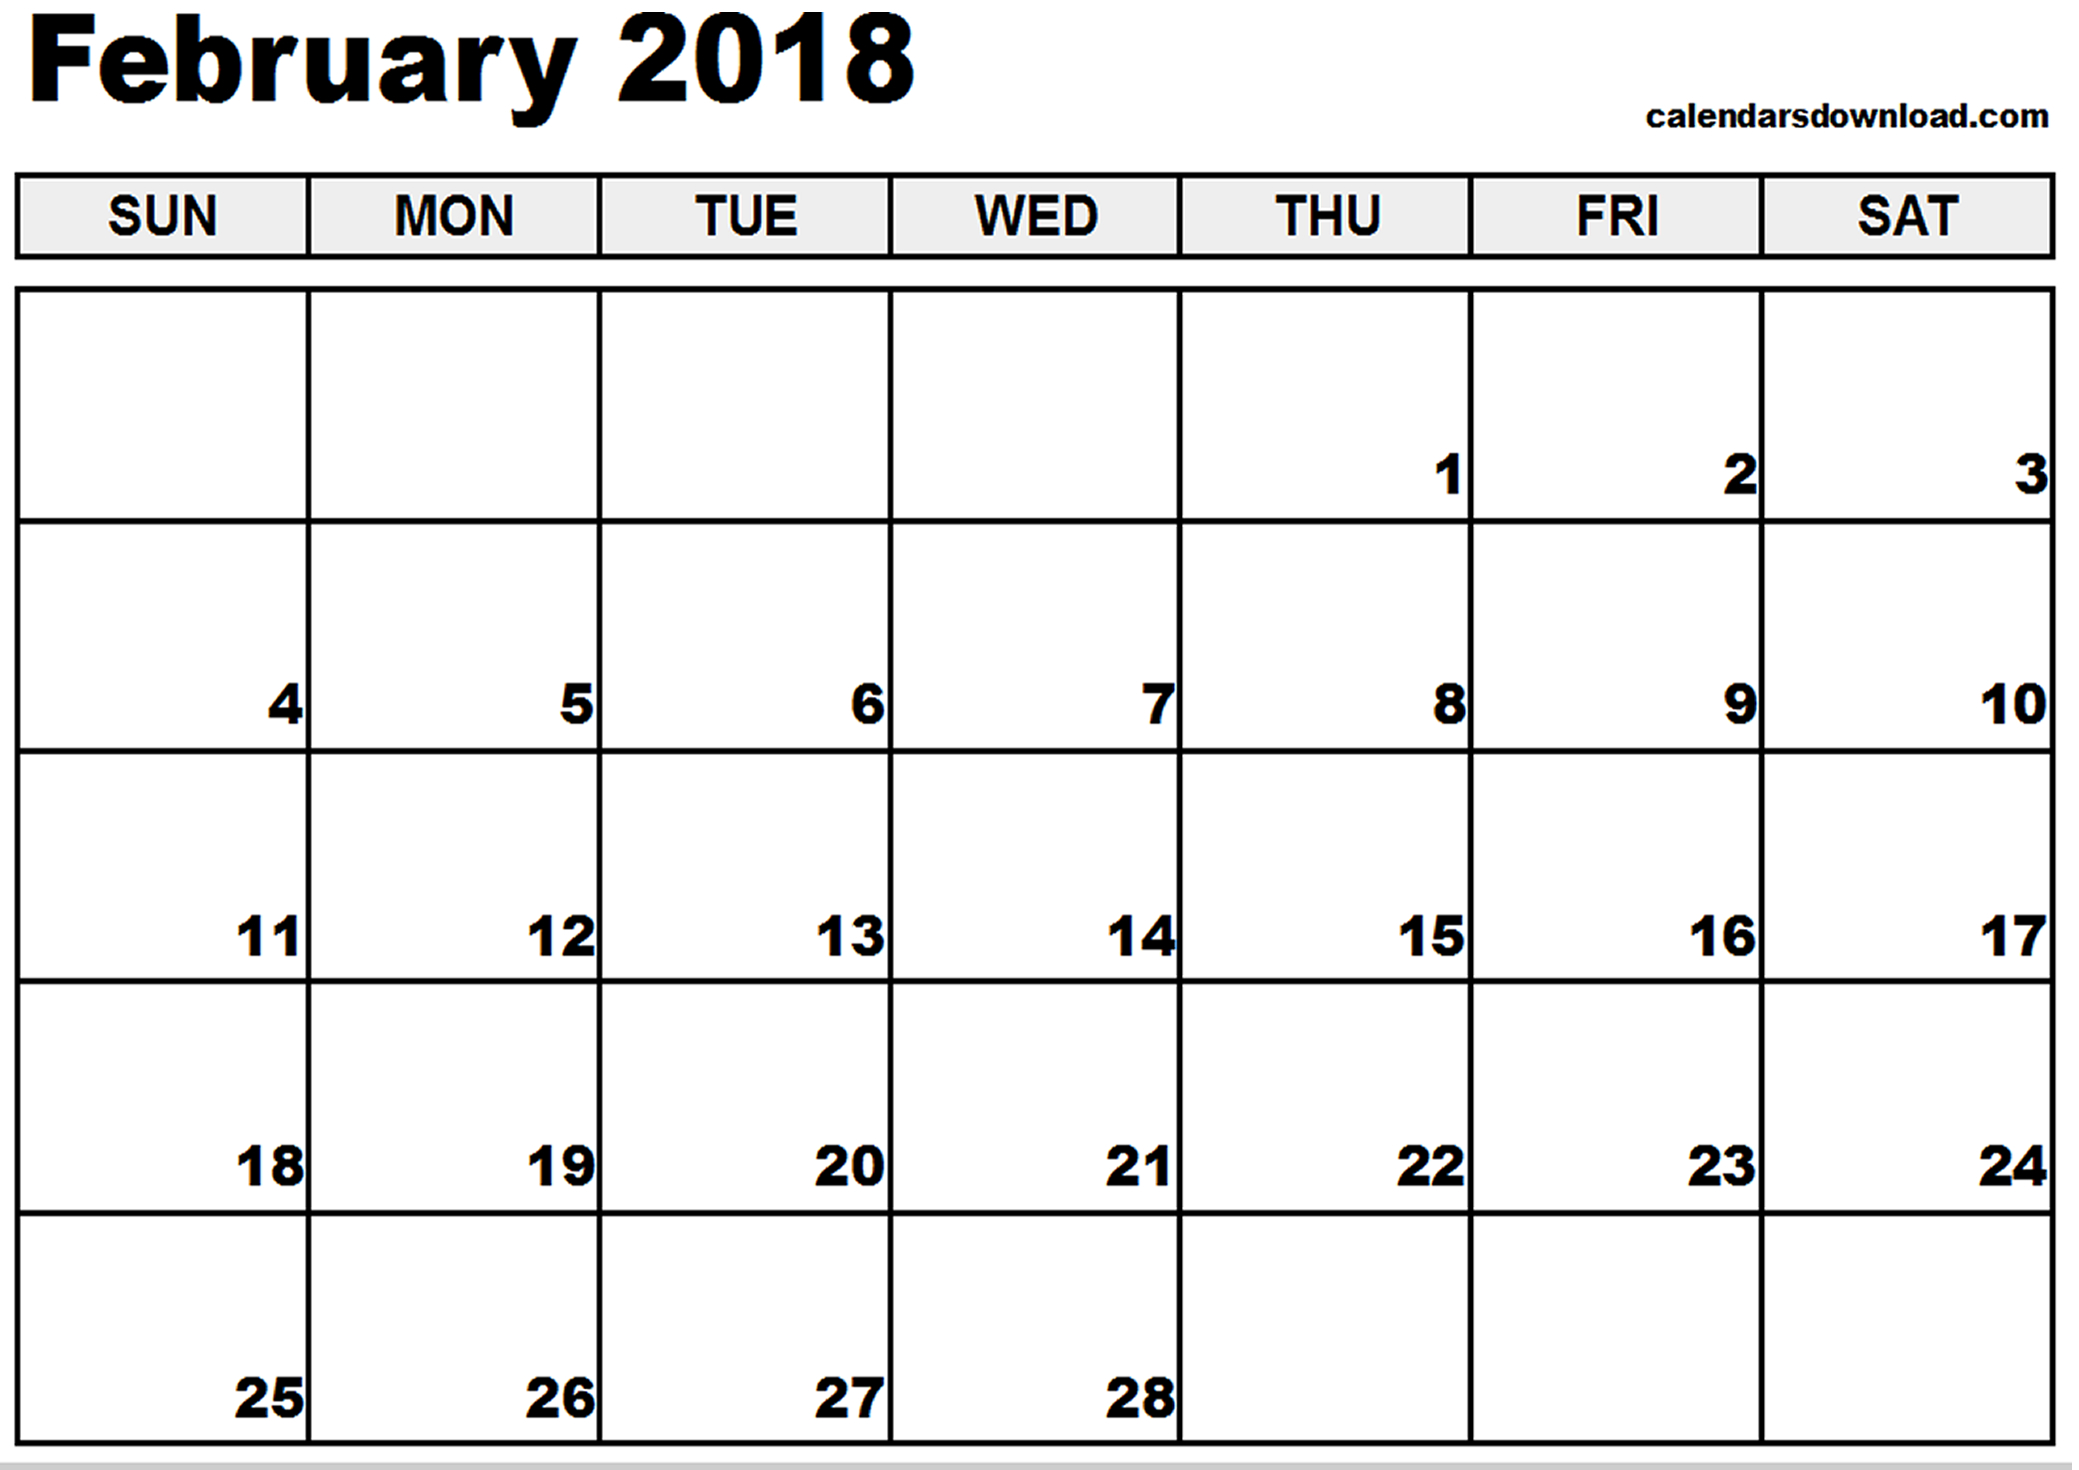 February 2018 Calendar | yearly calendar printable